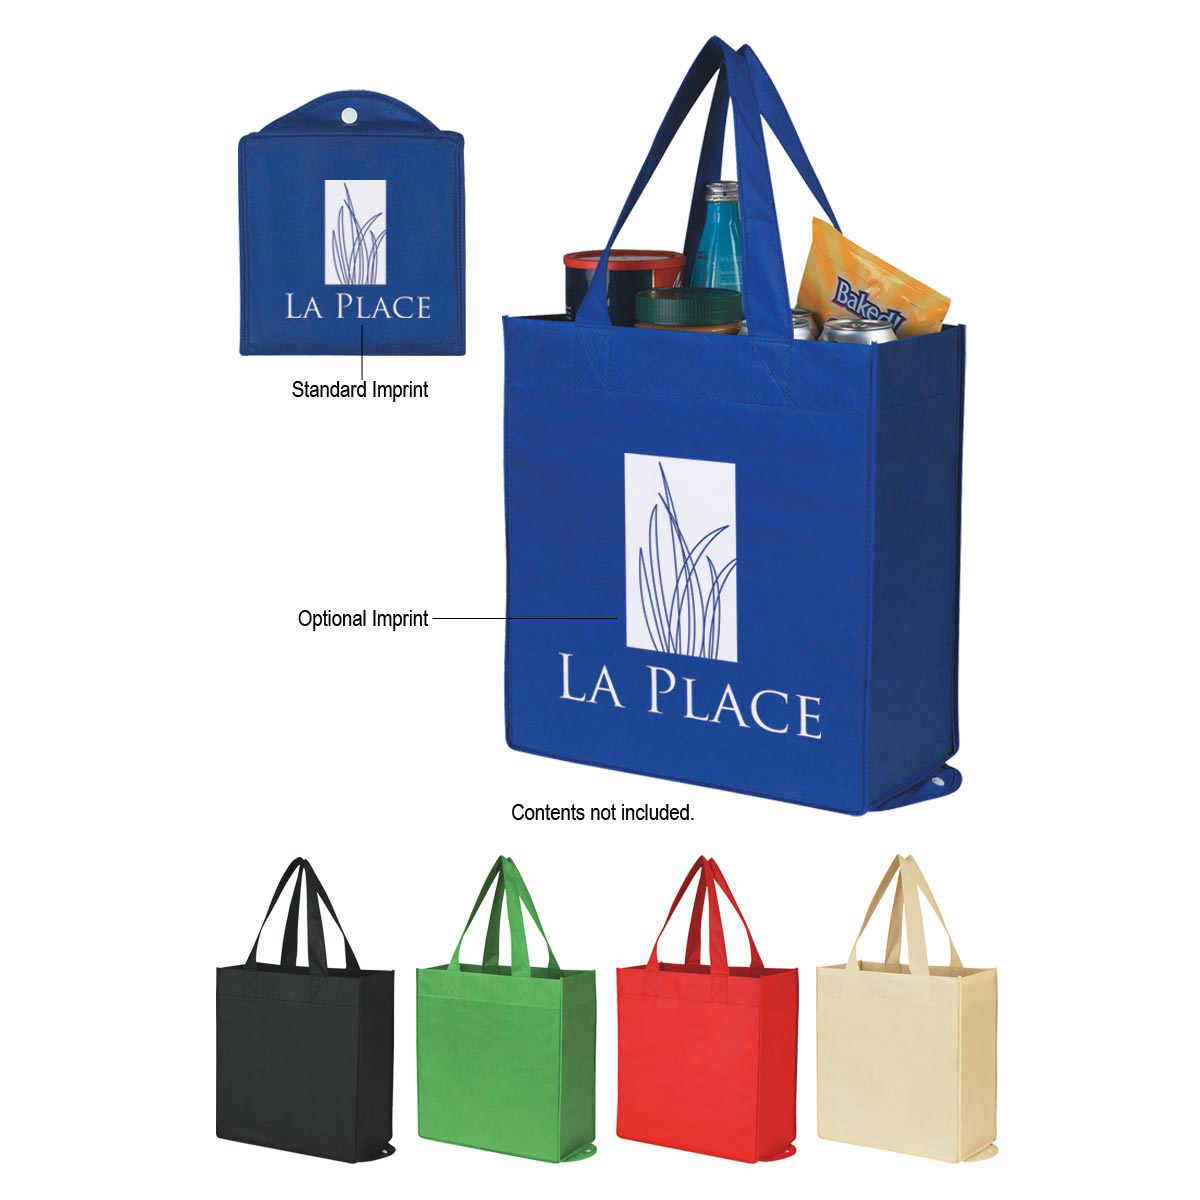 wholesale foldable tote bags, personalized in bulk , Black and Tan or Beige and Tan